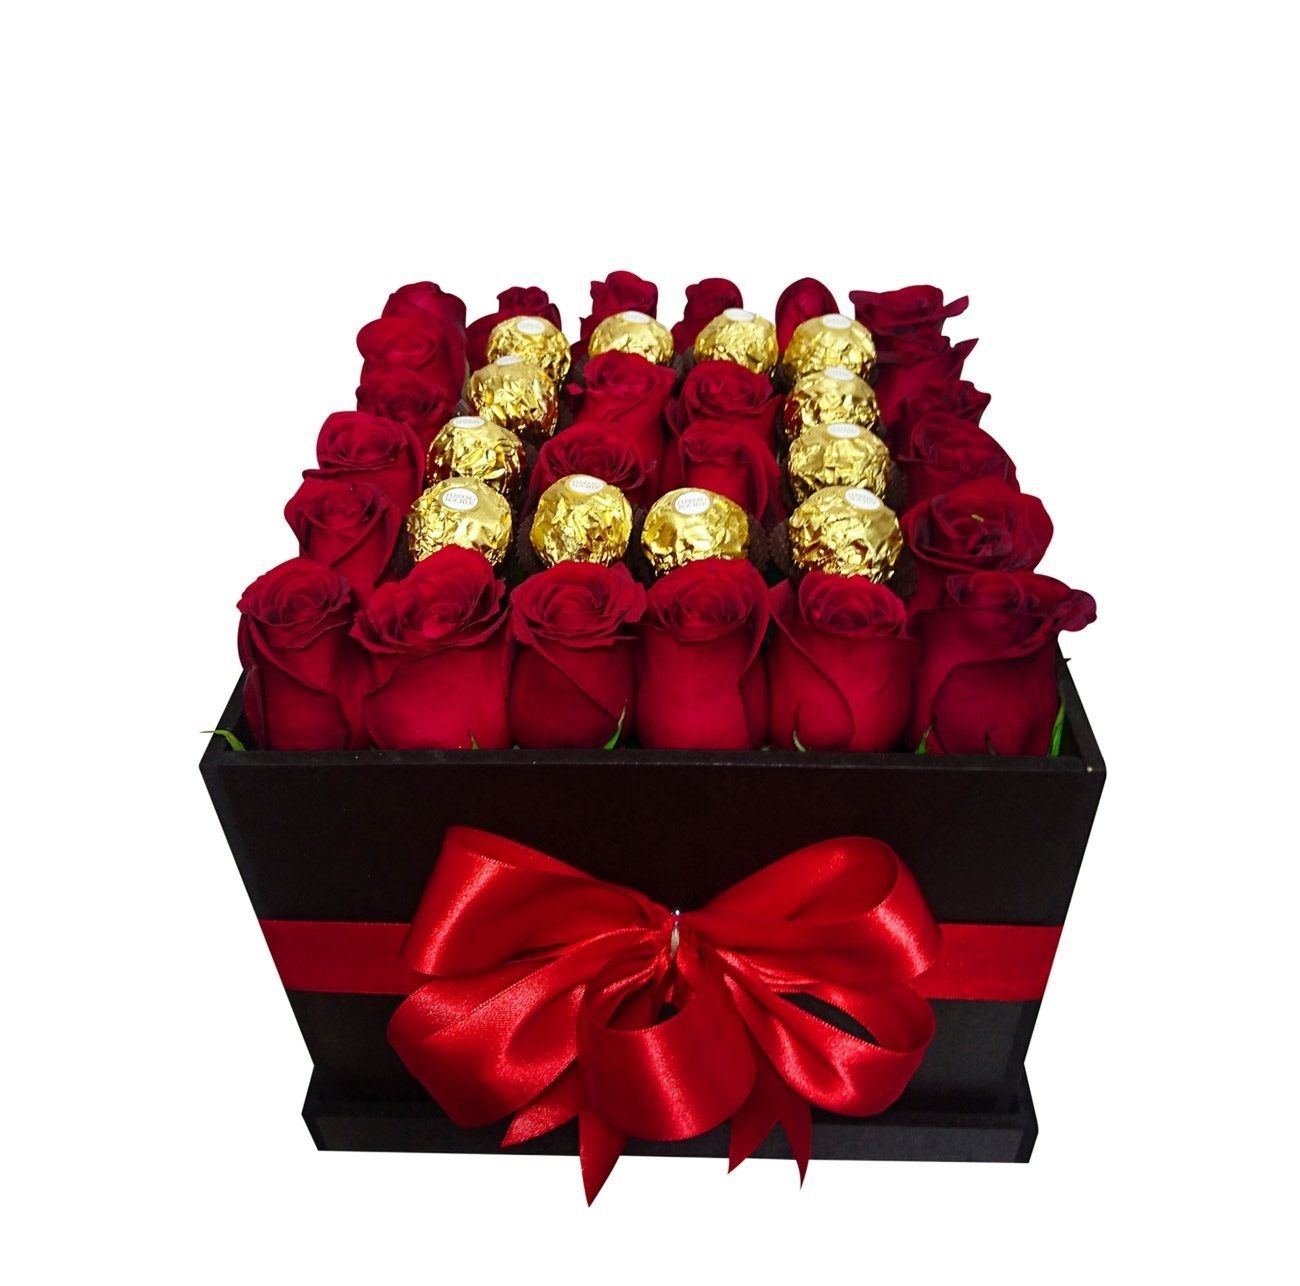 24-roses-and-12-chocolates-in-a-wooden-box-lolamxnic011-1-8d6232bab2a73db-b38eec59